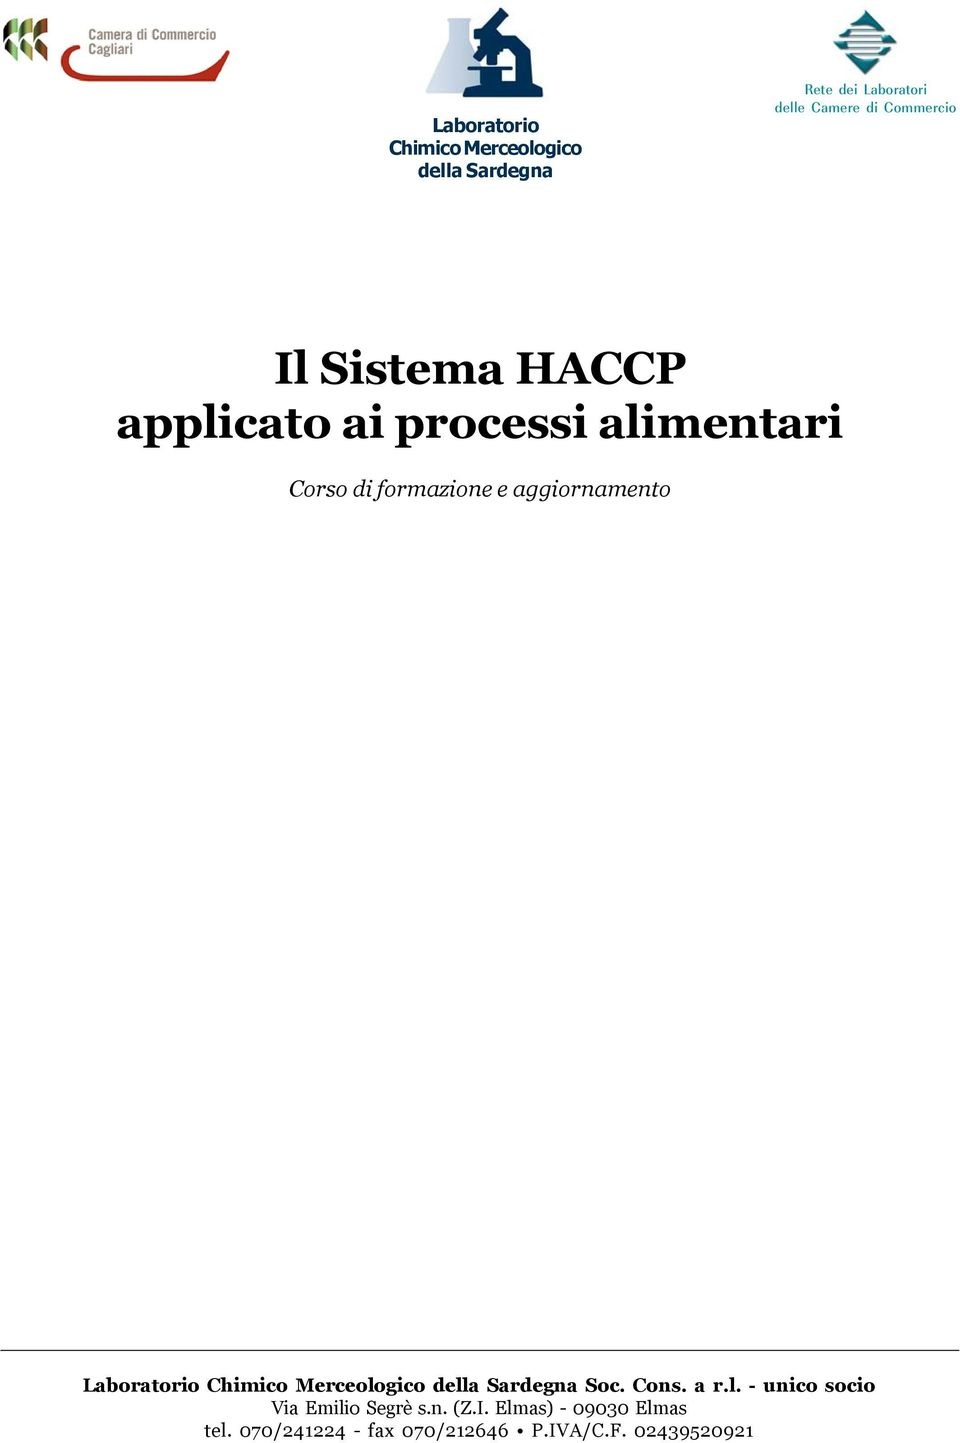 Commercio Il Sistema HACCP applicato ai